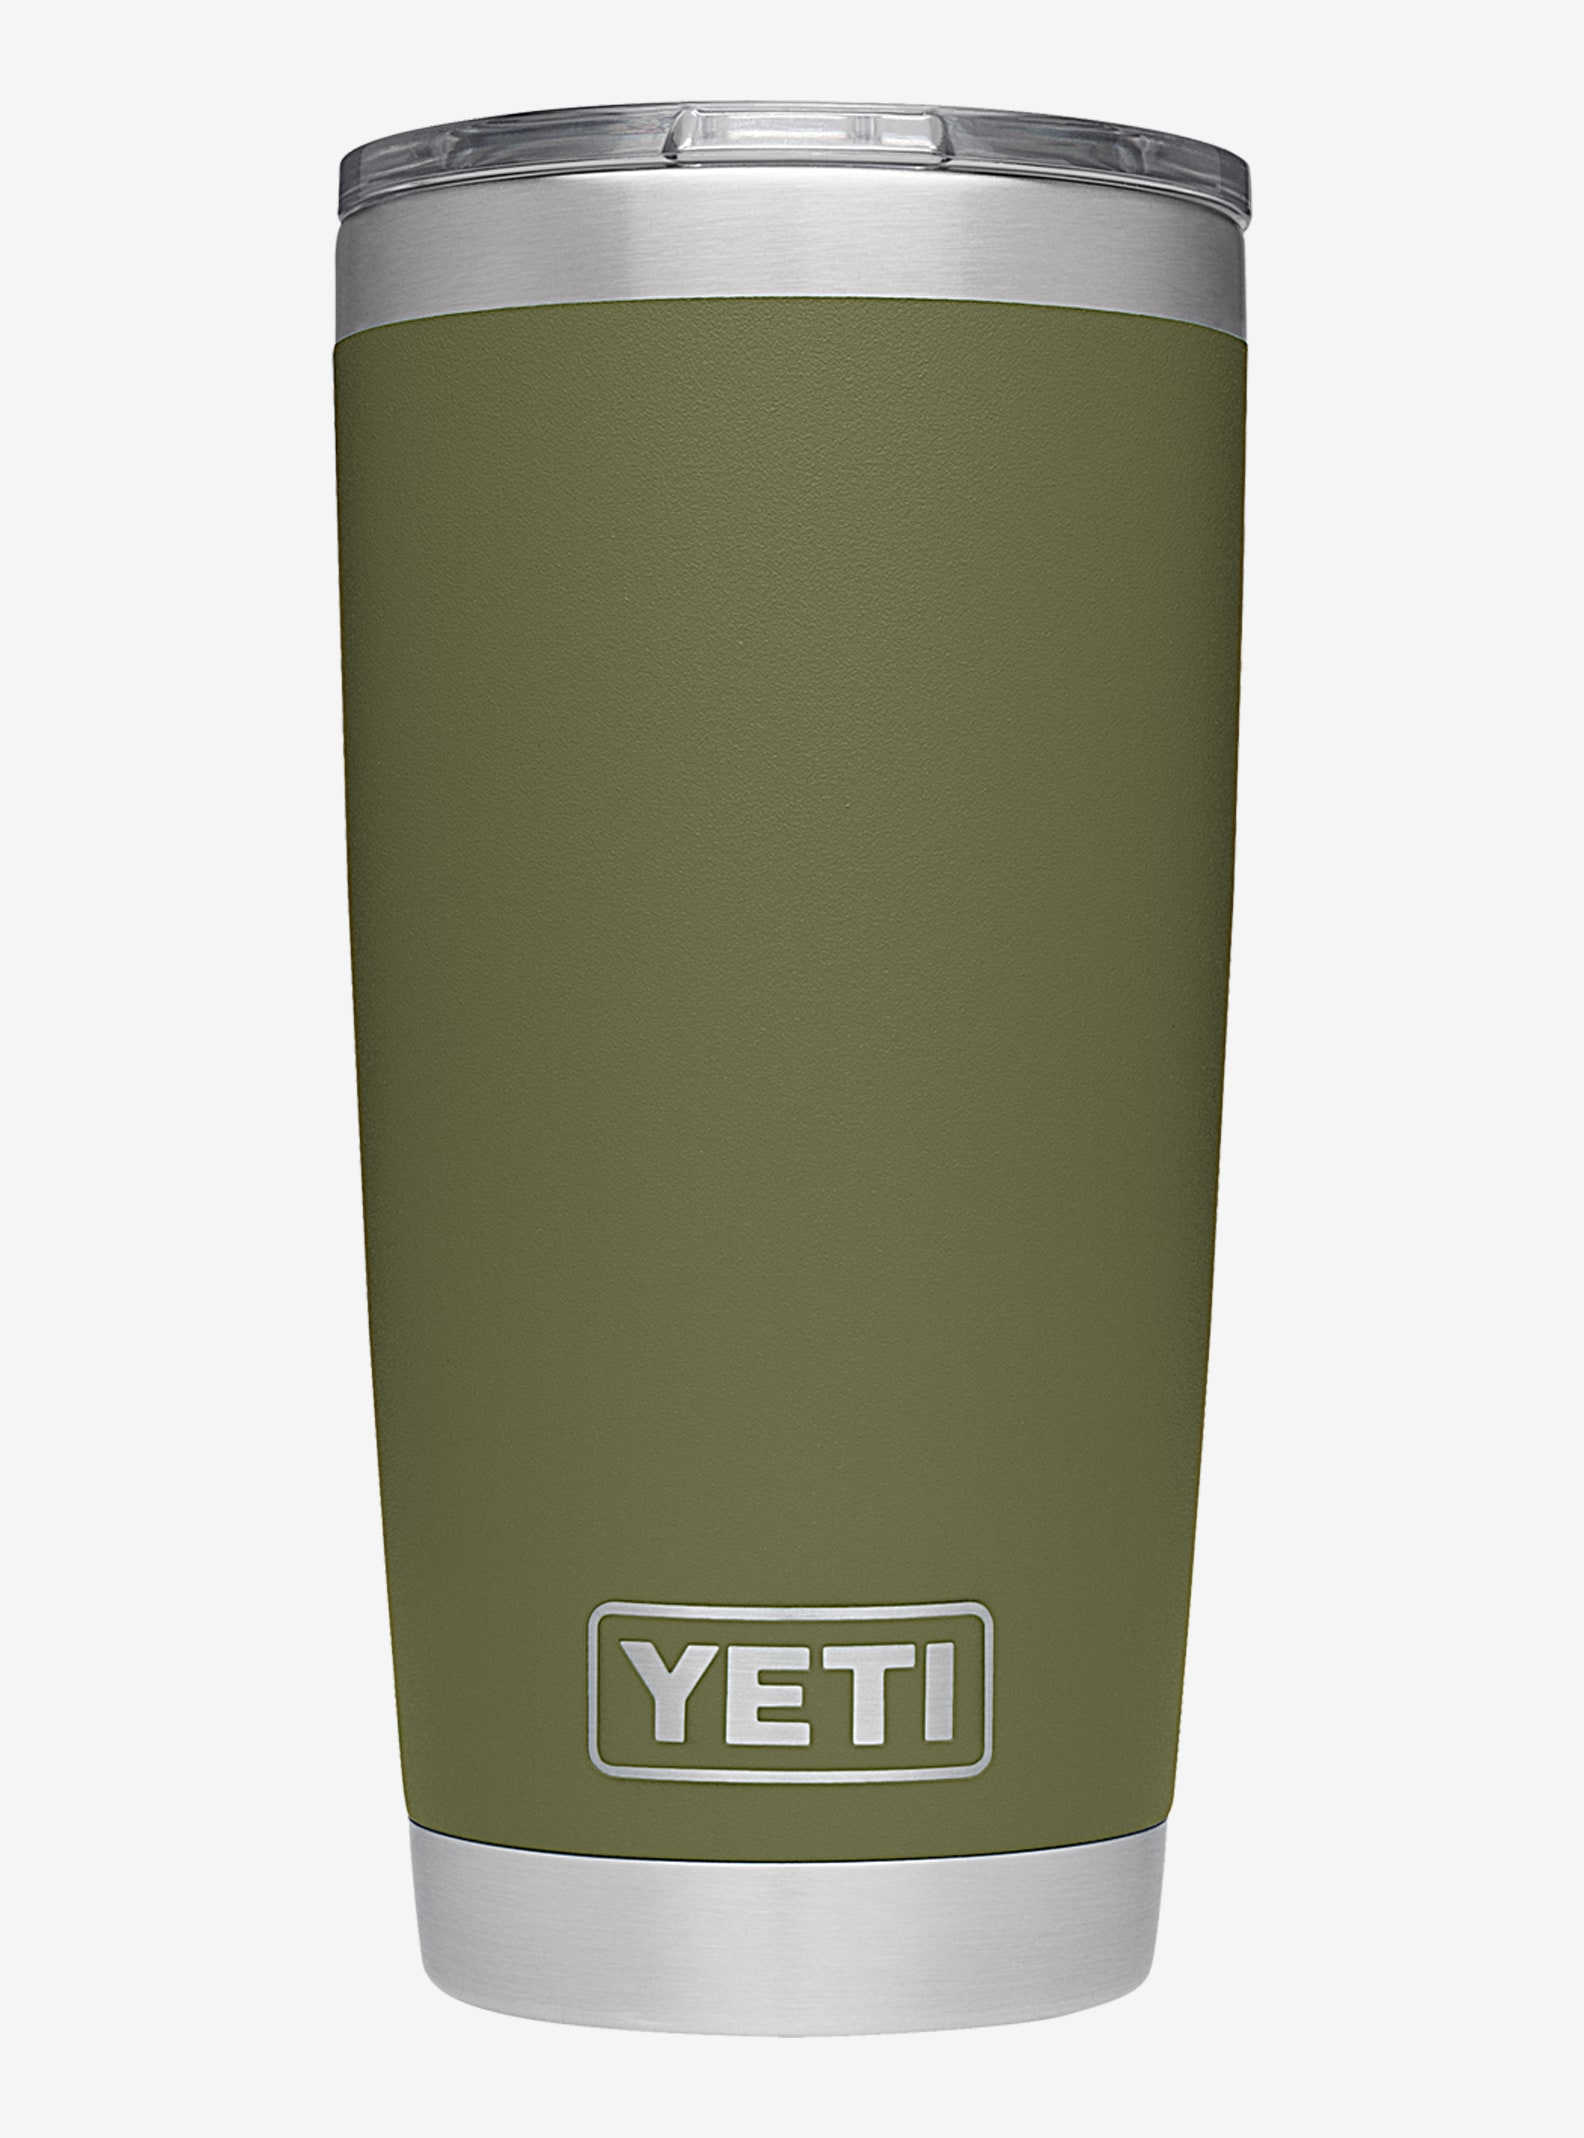 YETI Rambler Mug - 20oz shown in Dark Green